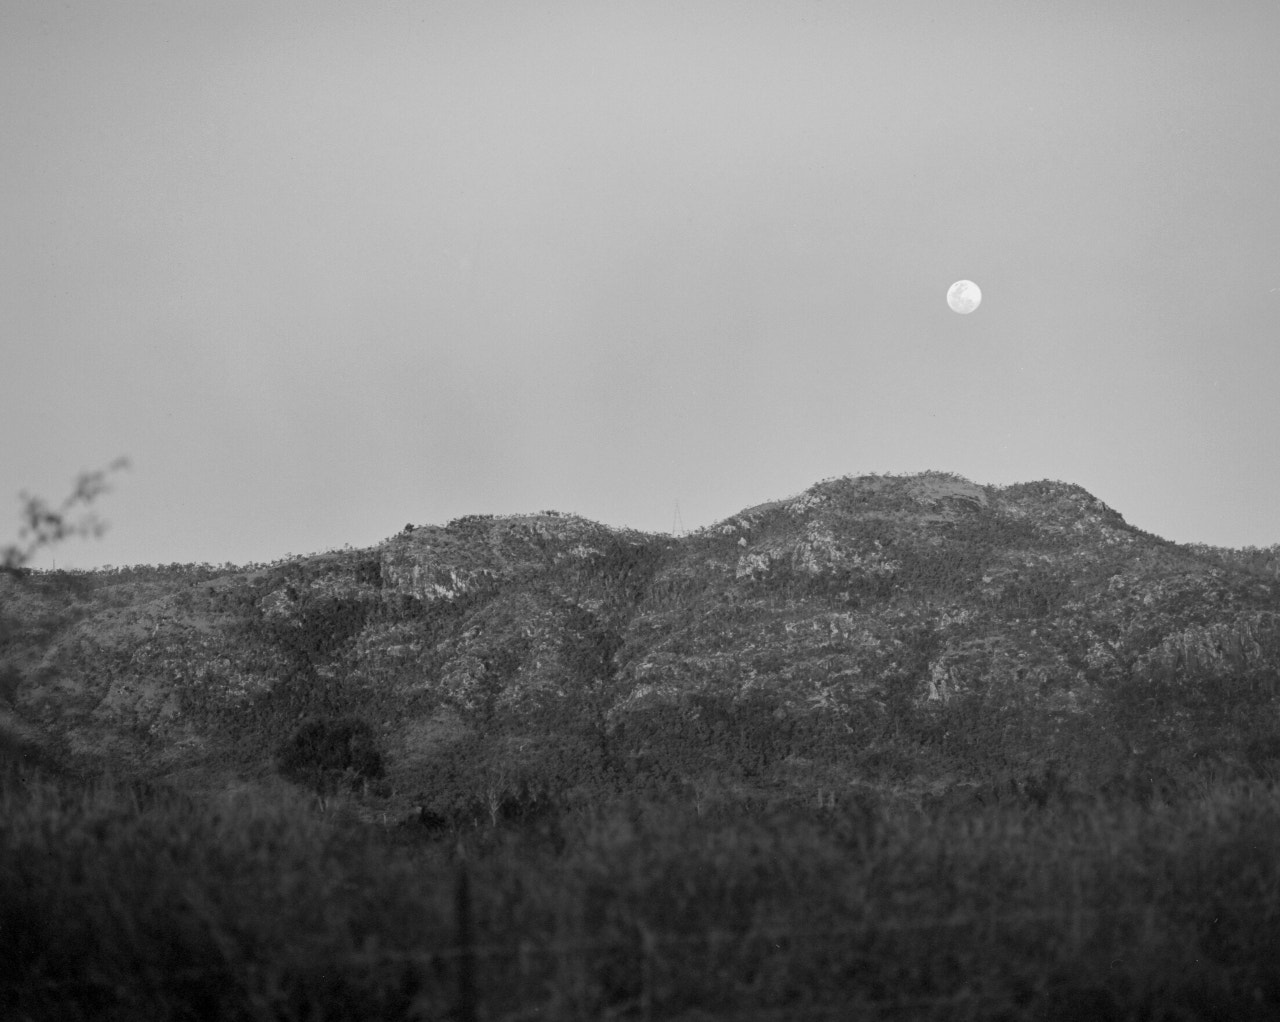 Photograph Moonrise over mount stuart by Neal Thorley on 500px